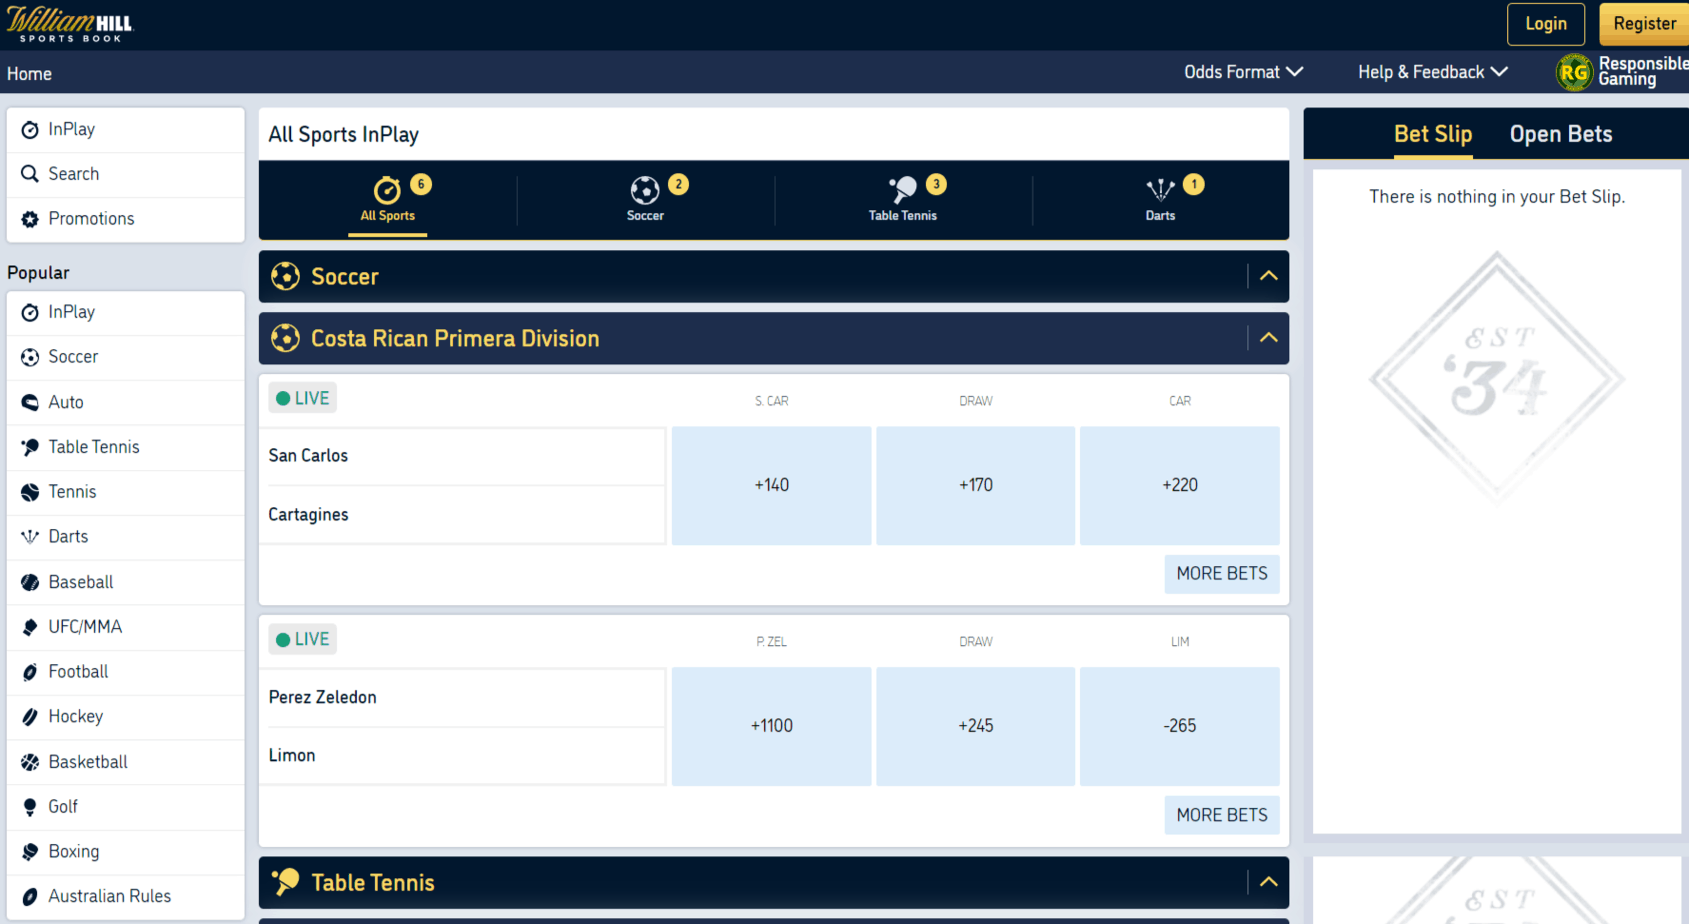 William hill online sports betting review asianconnect tipsters betting